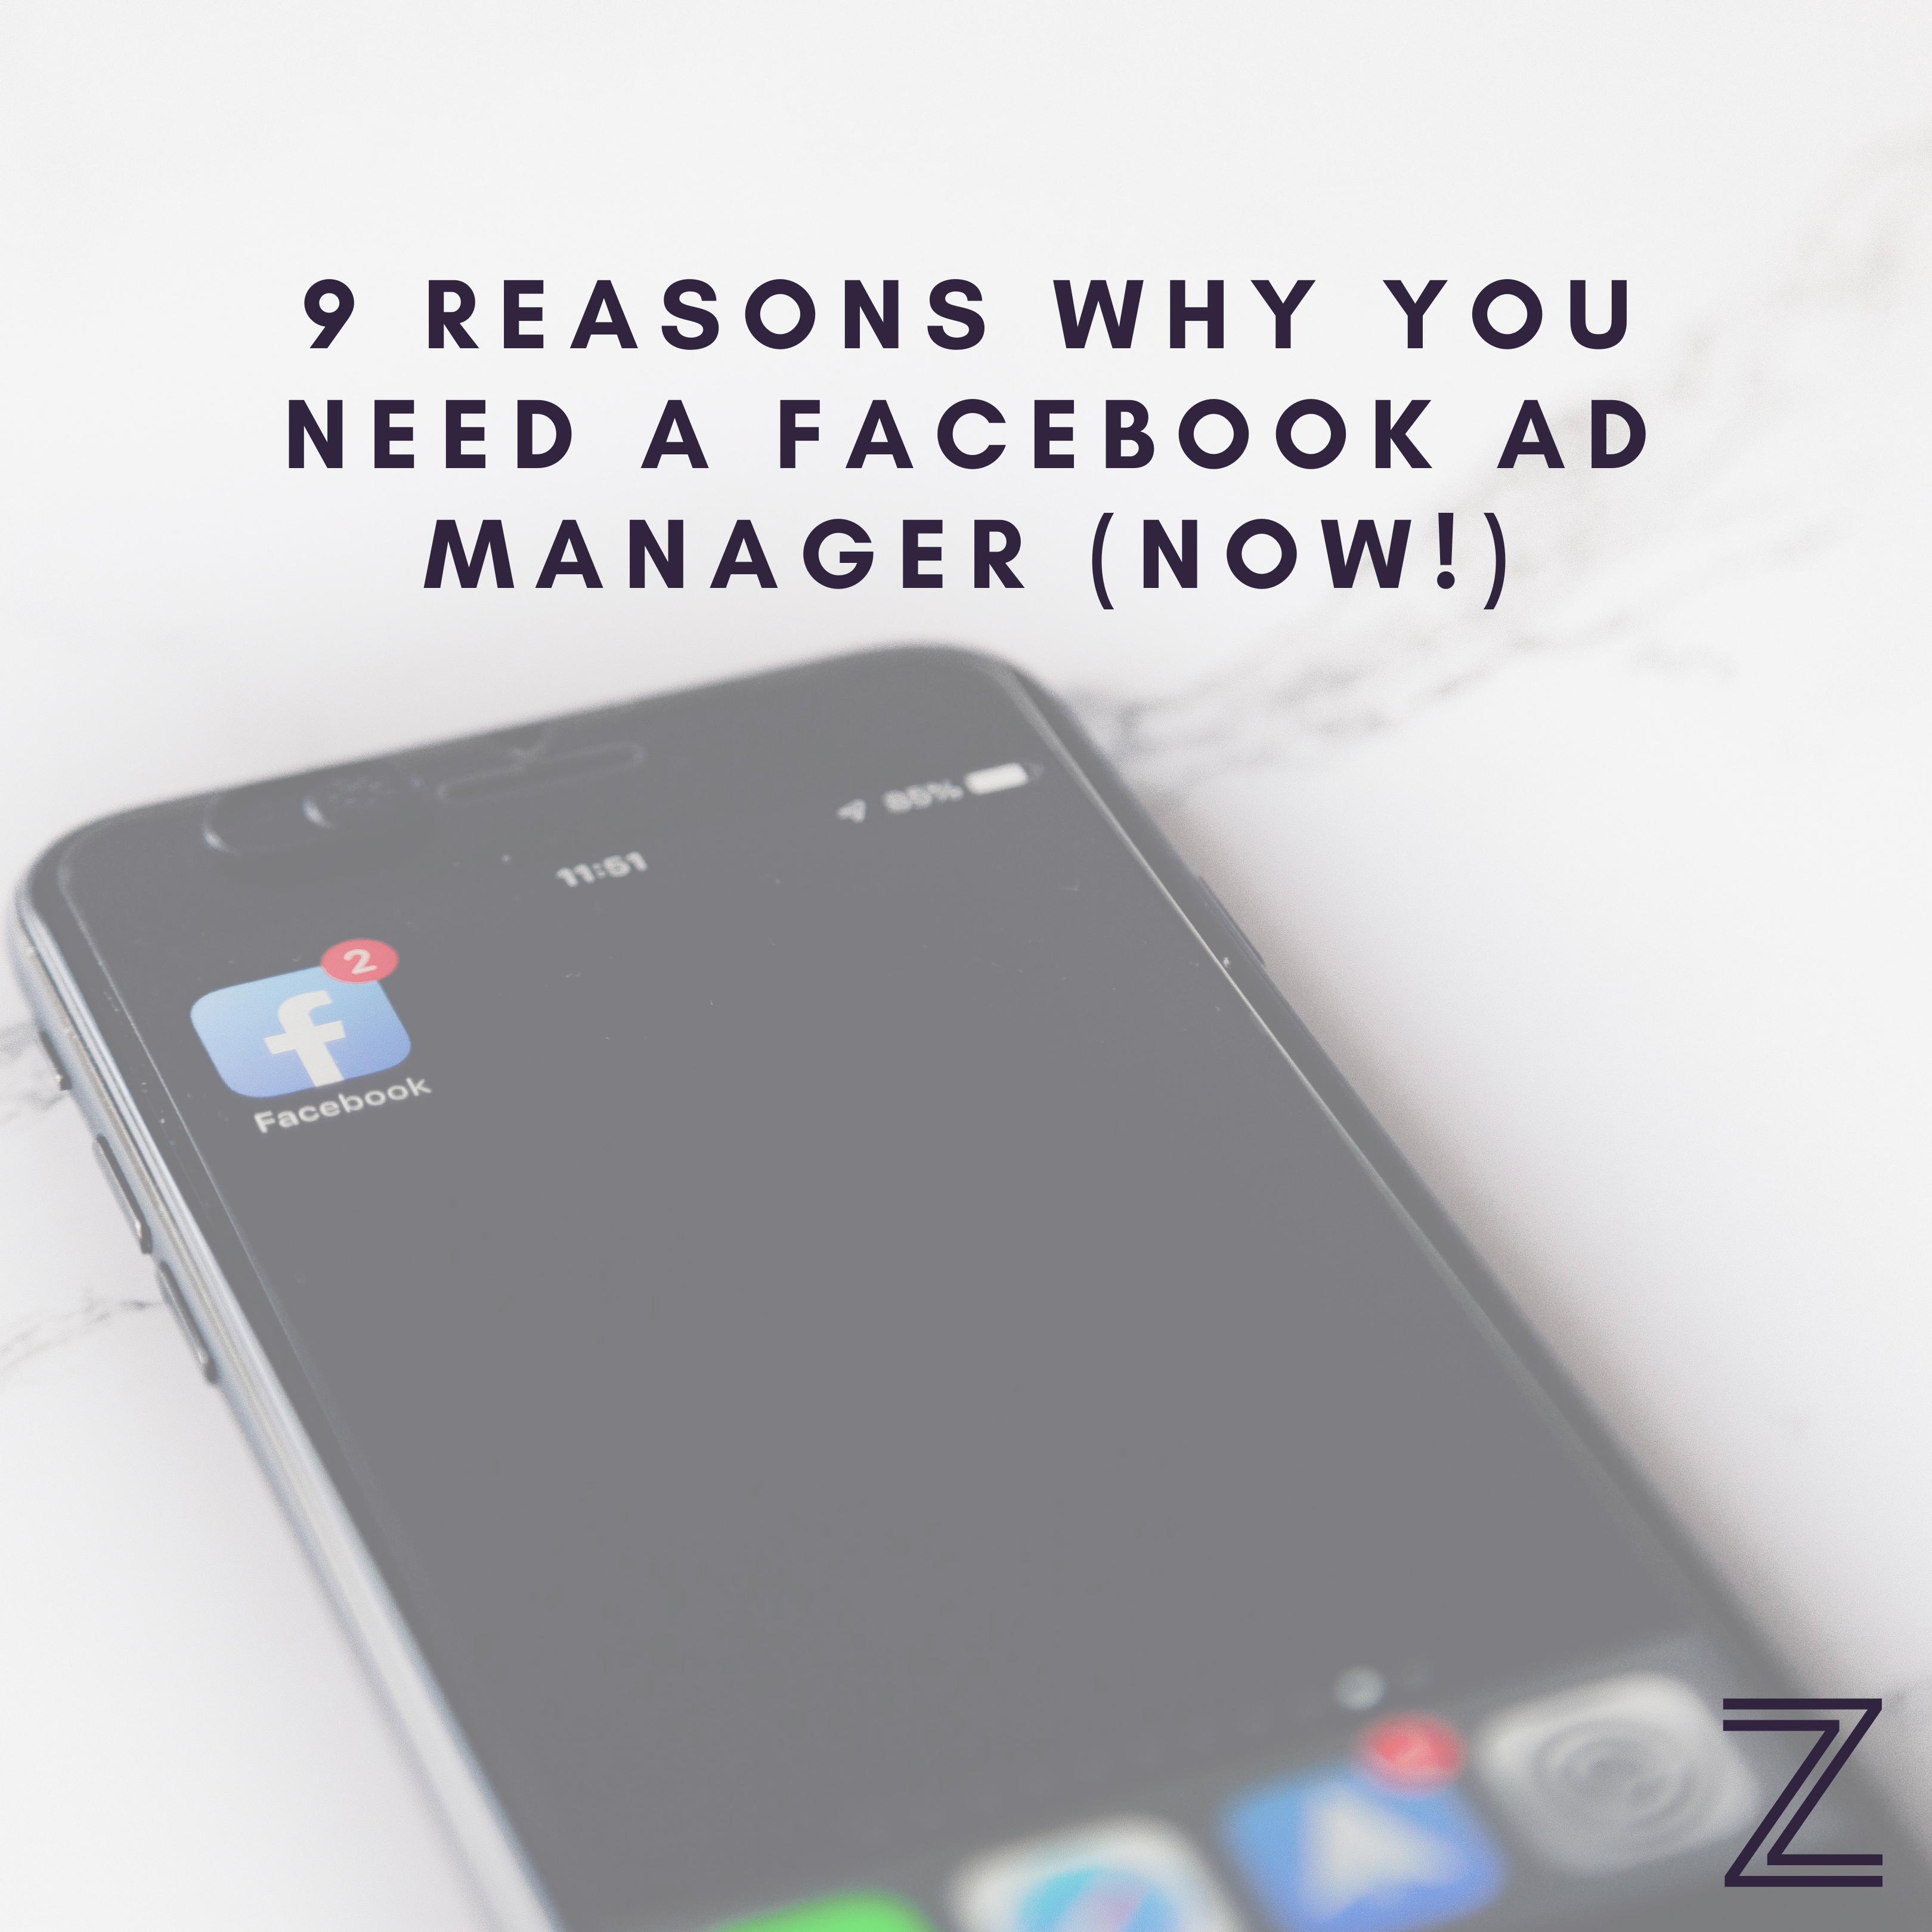 9 Reasons Why You Need a Facebook Ad Manager (Now!)